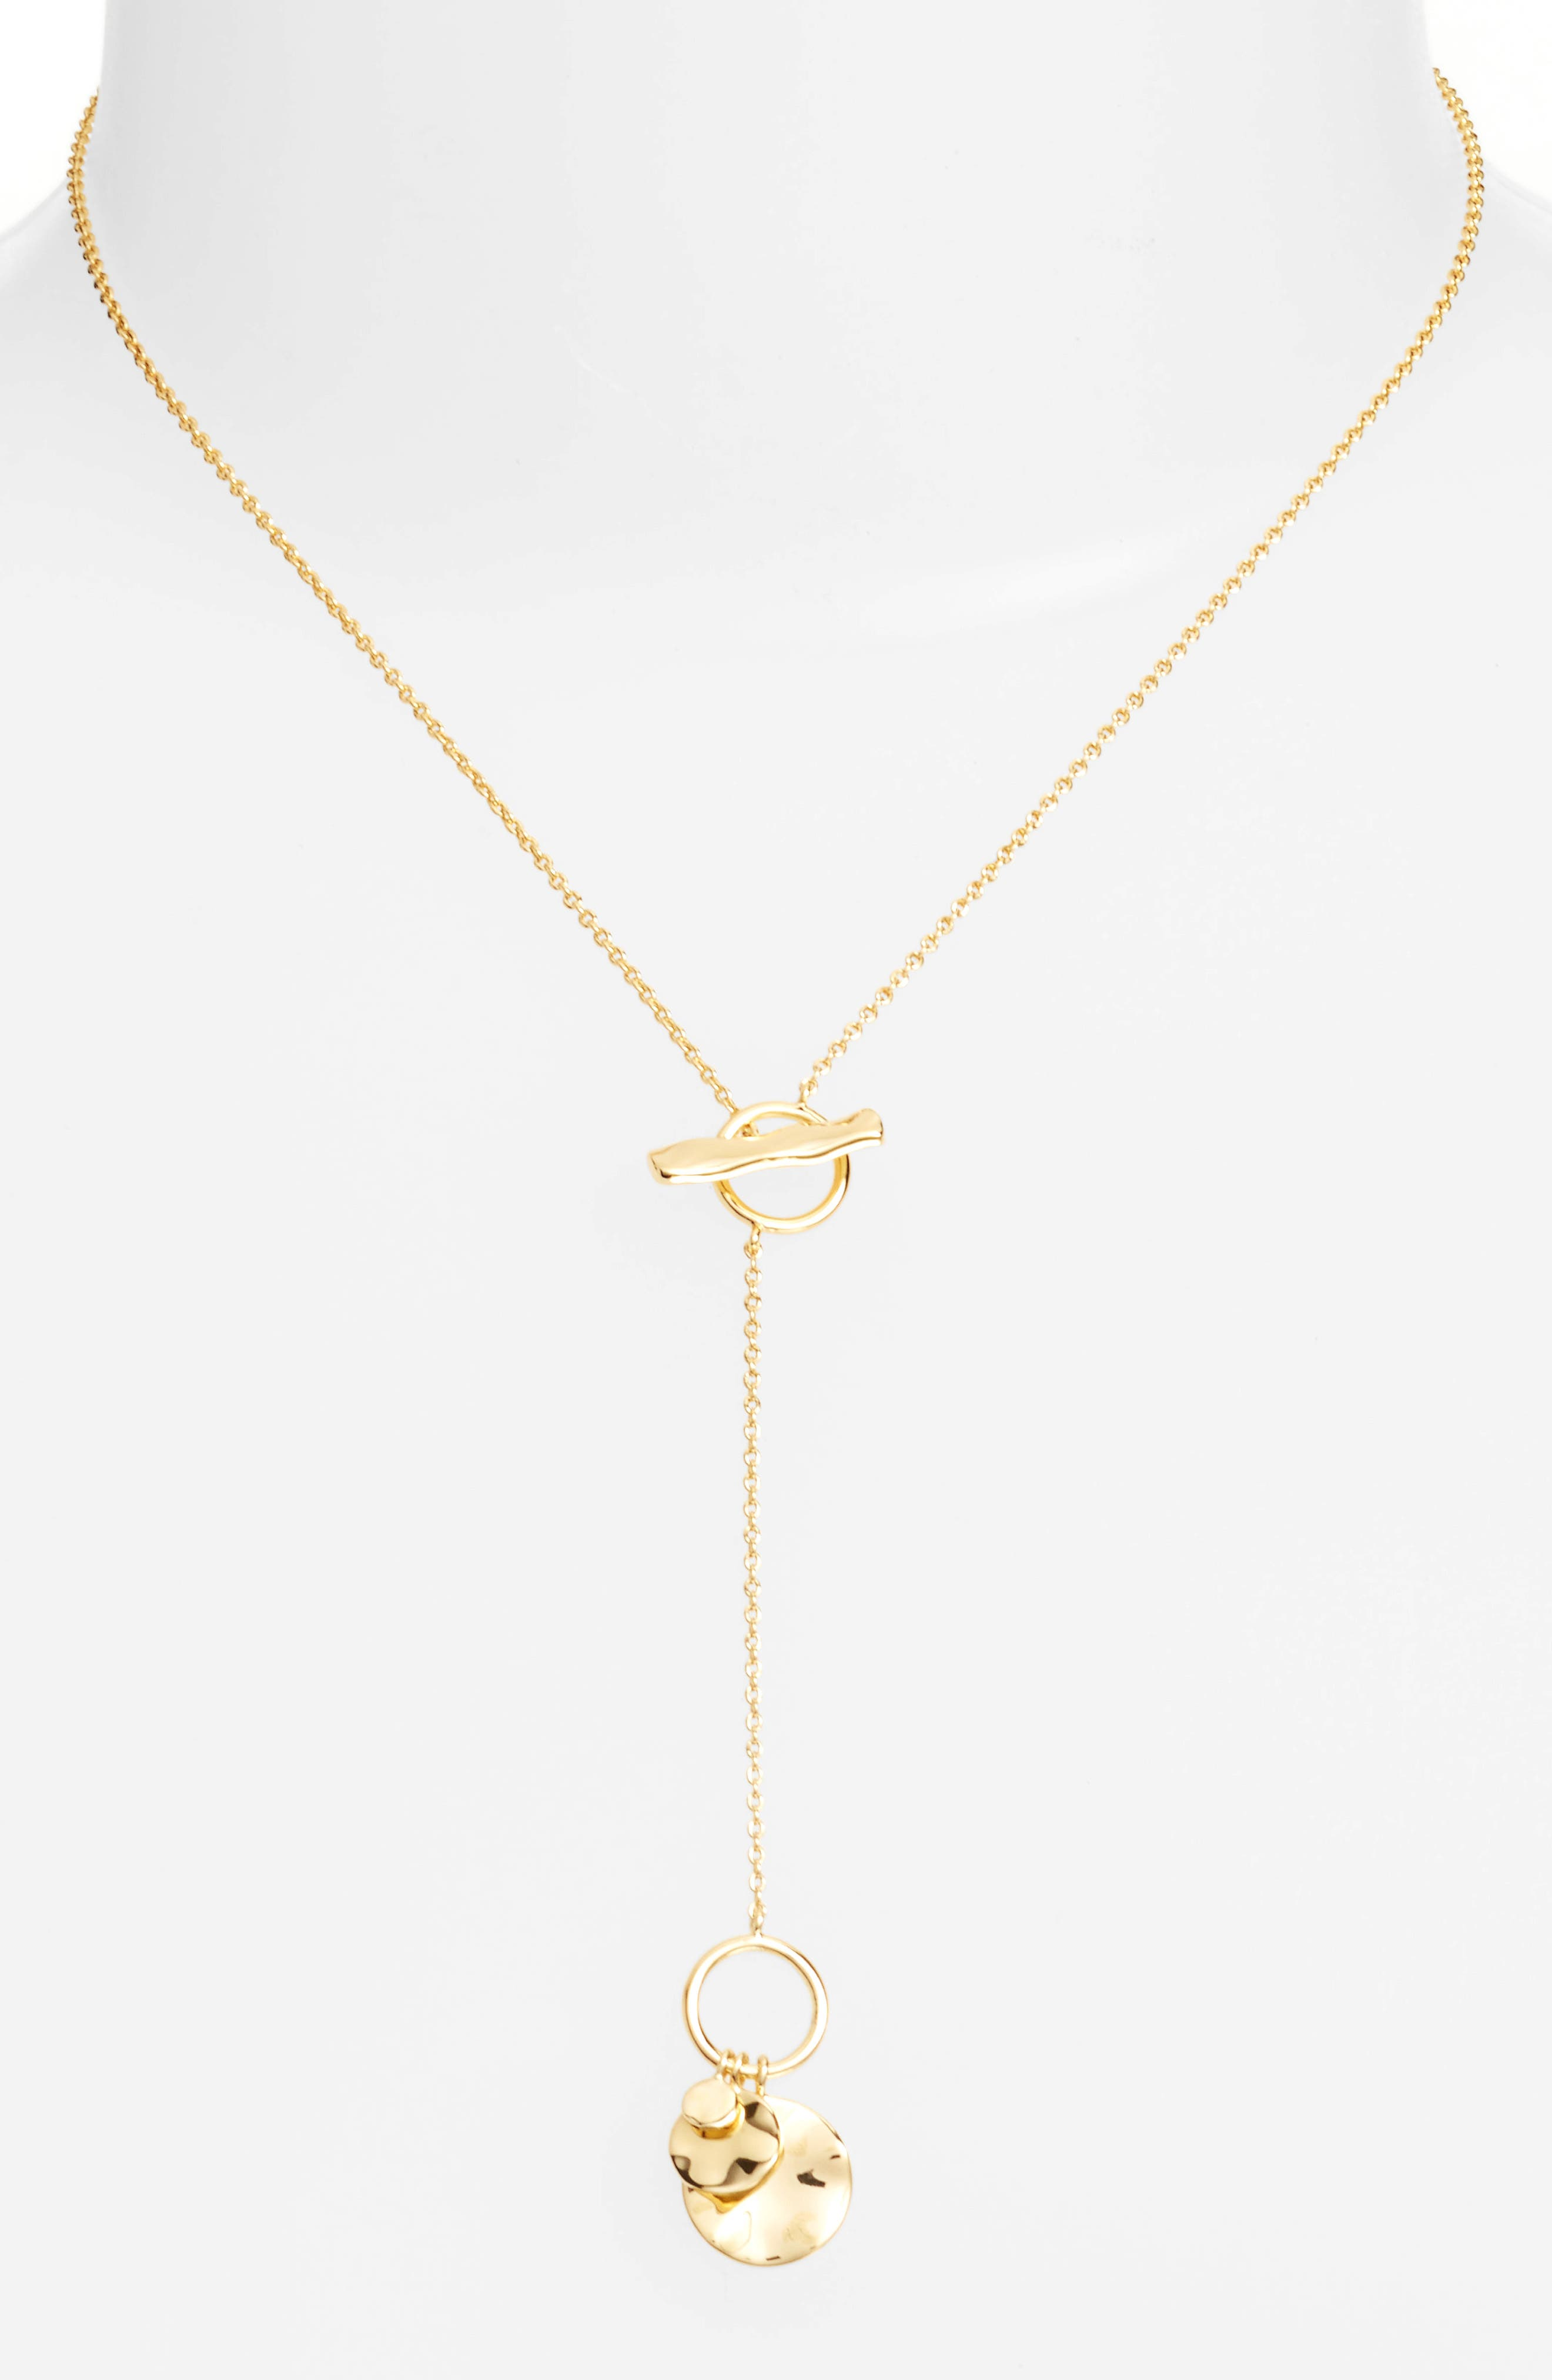 Chloe Small Hammered Disc Toggle Necklace,                             Main thumbnail 1, color,                             Gold